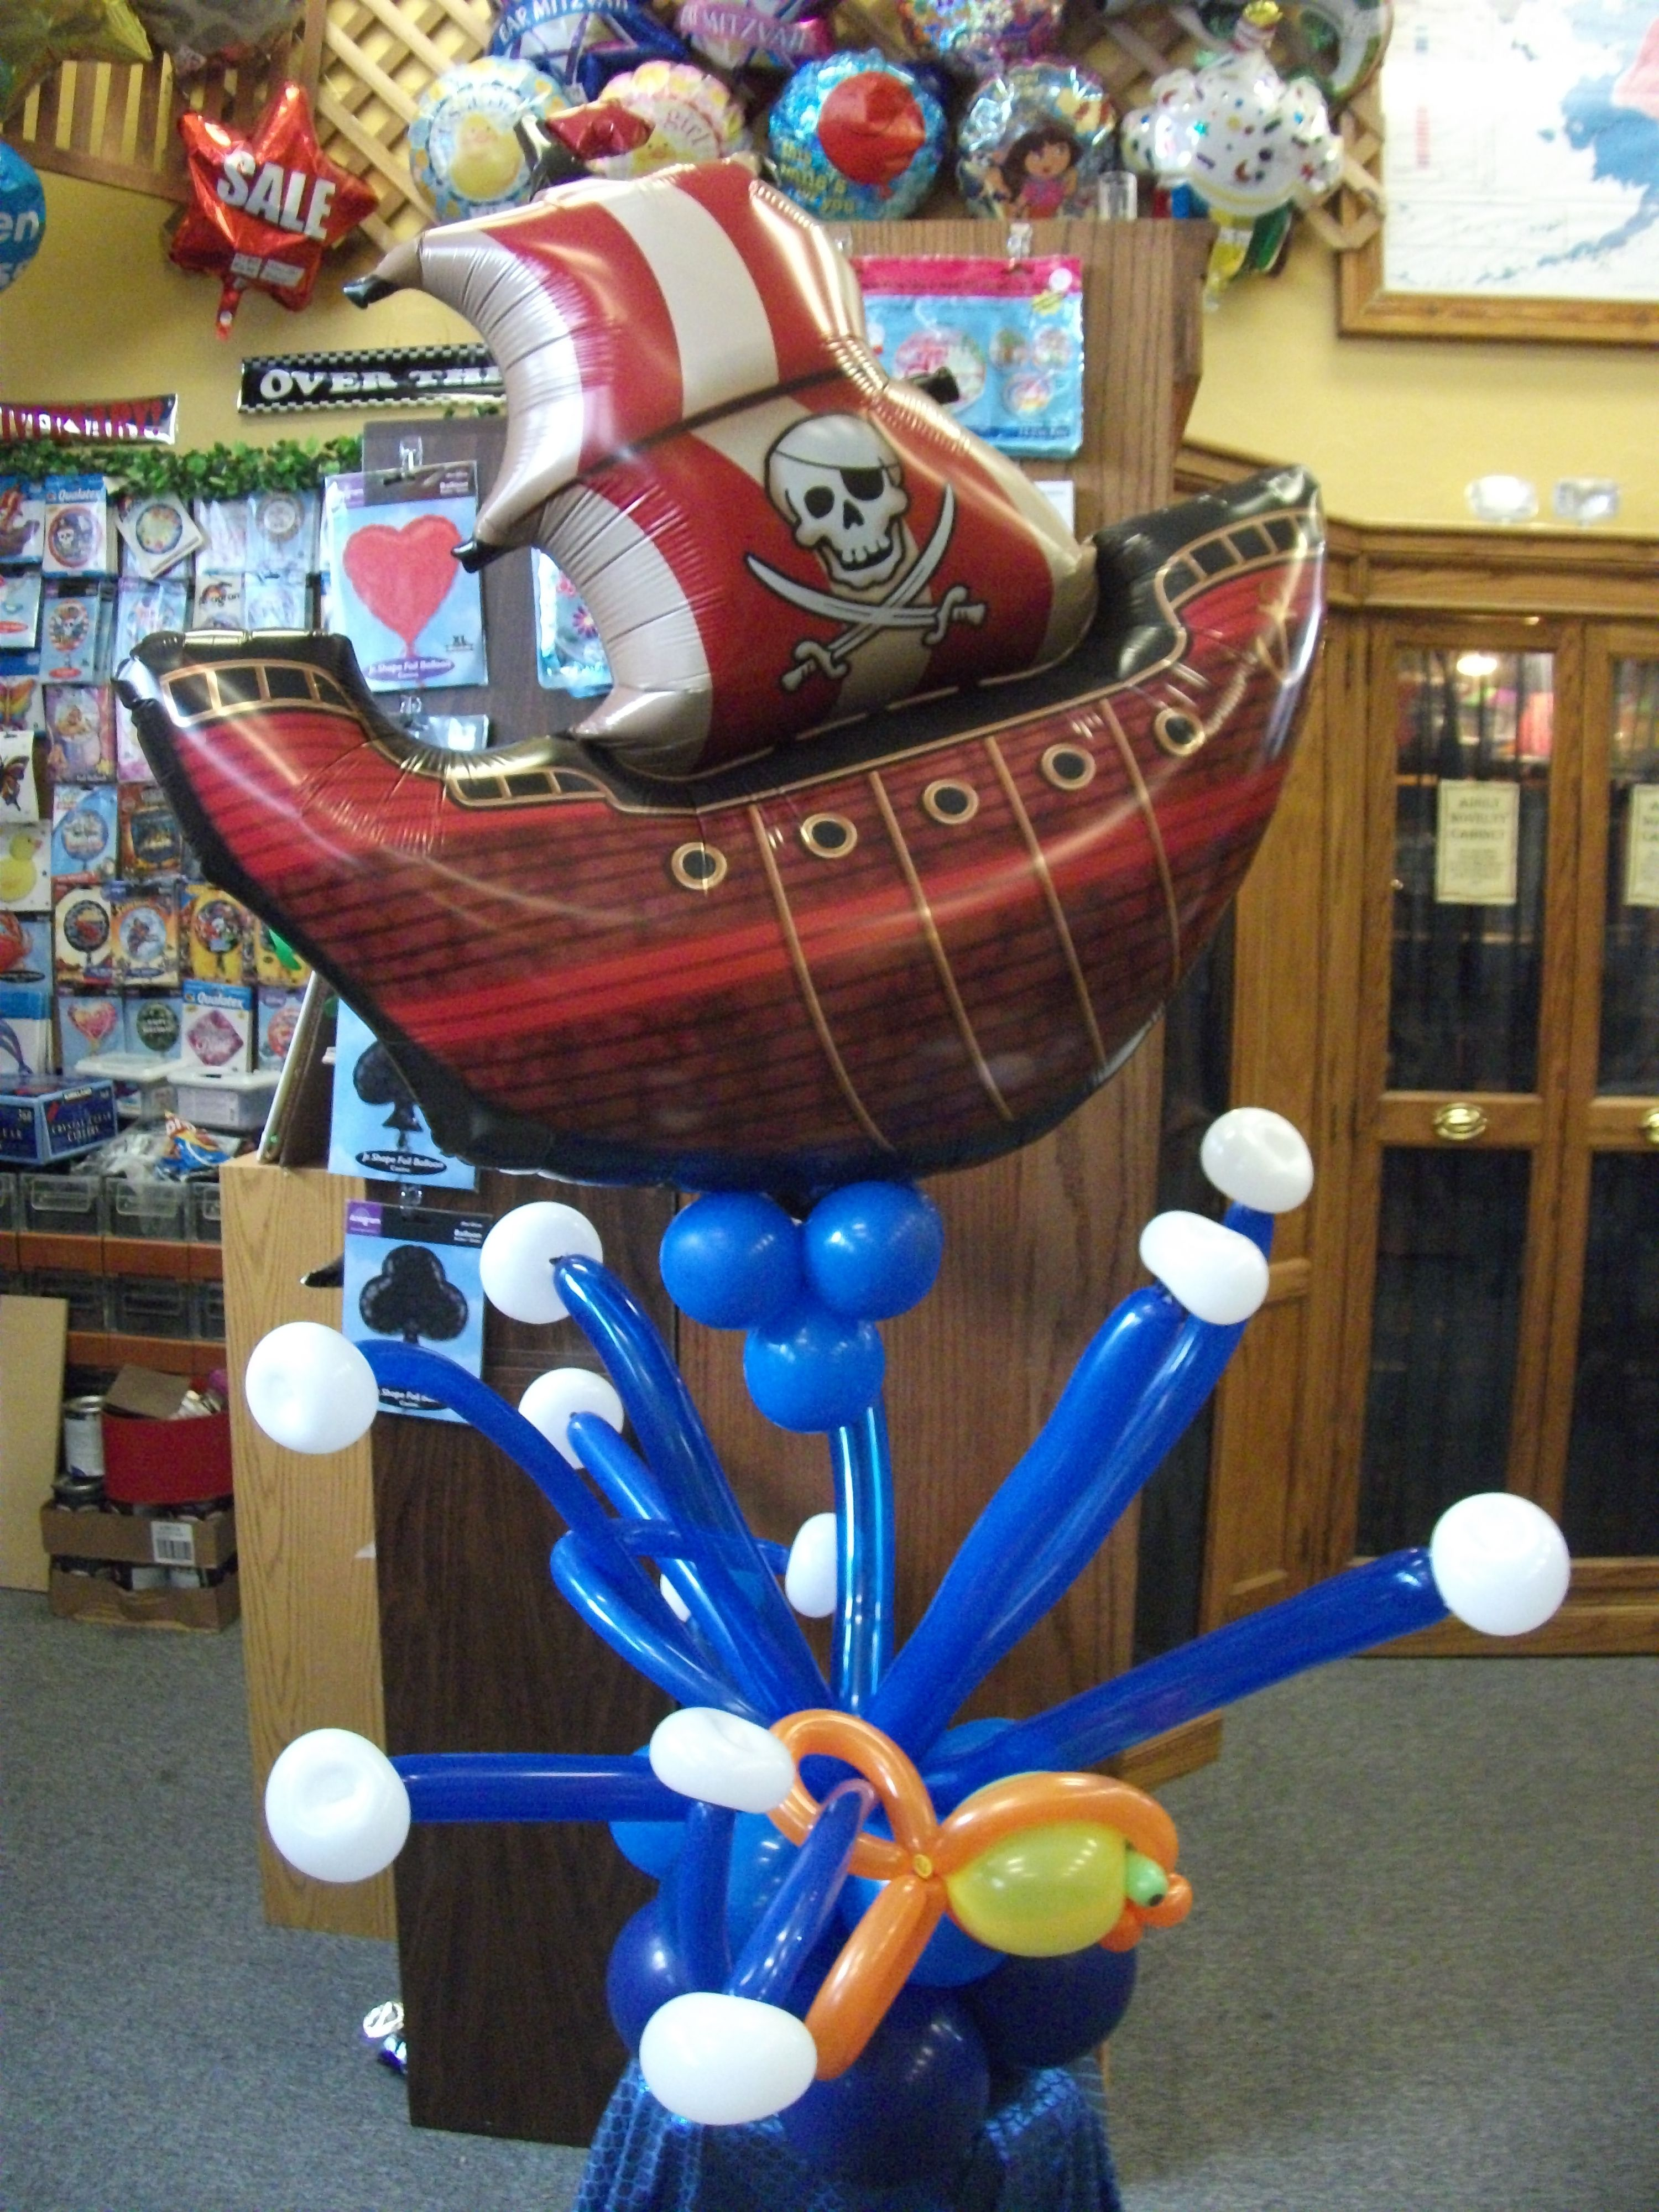 Balloon Pirate ship on the water by Balloons by Night Moods in Juneau, Alaska